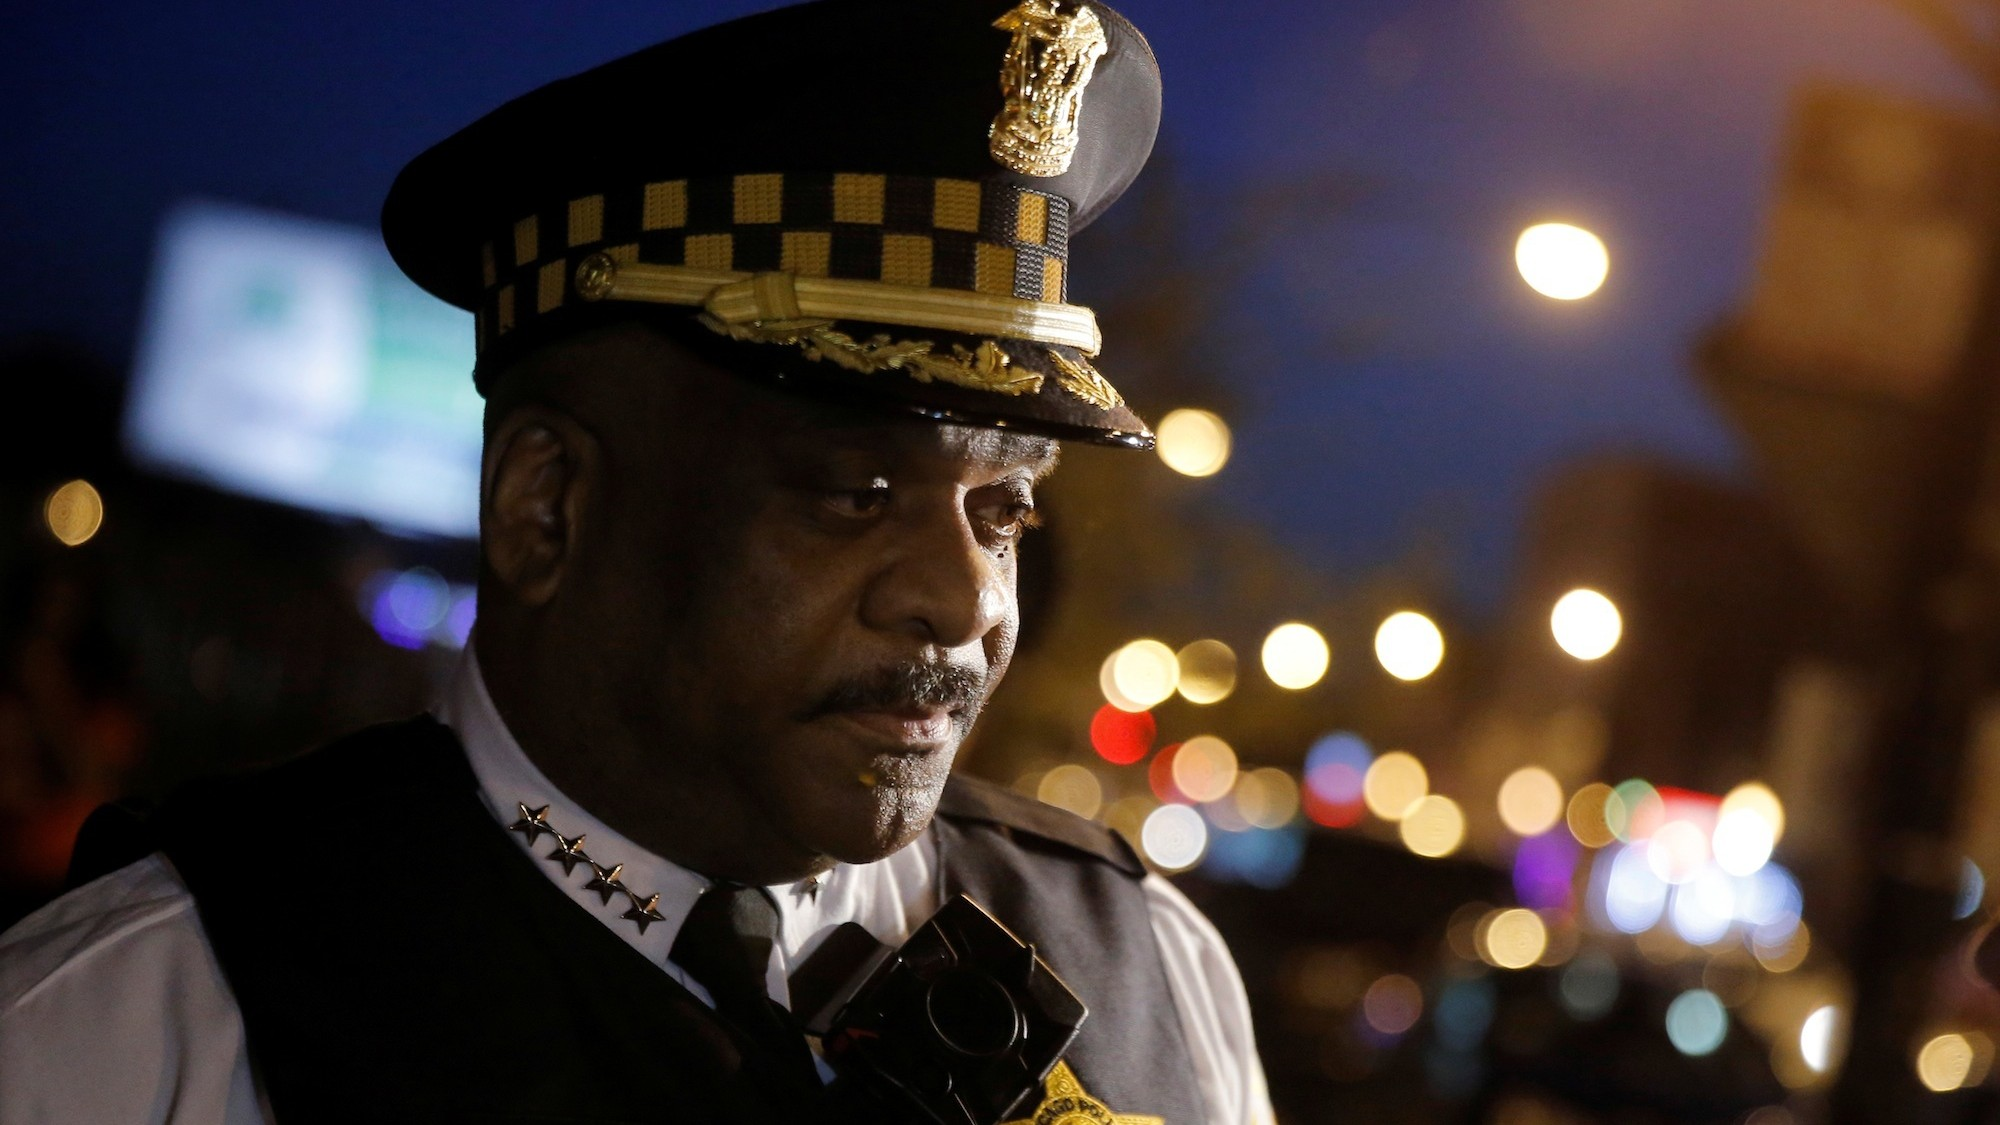 Police shooting of 18-year-old may have violated policies, Chicago's top cop says